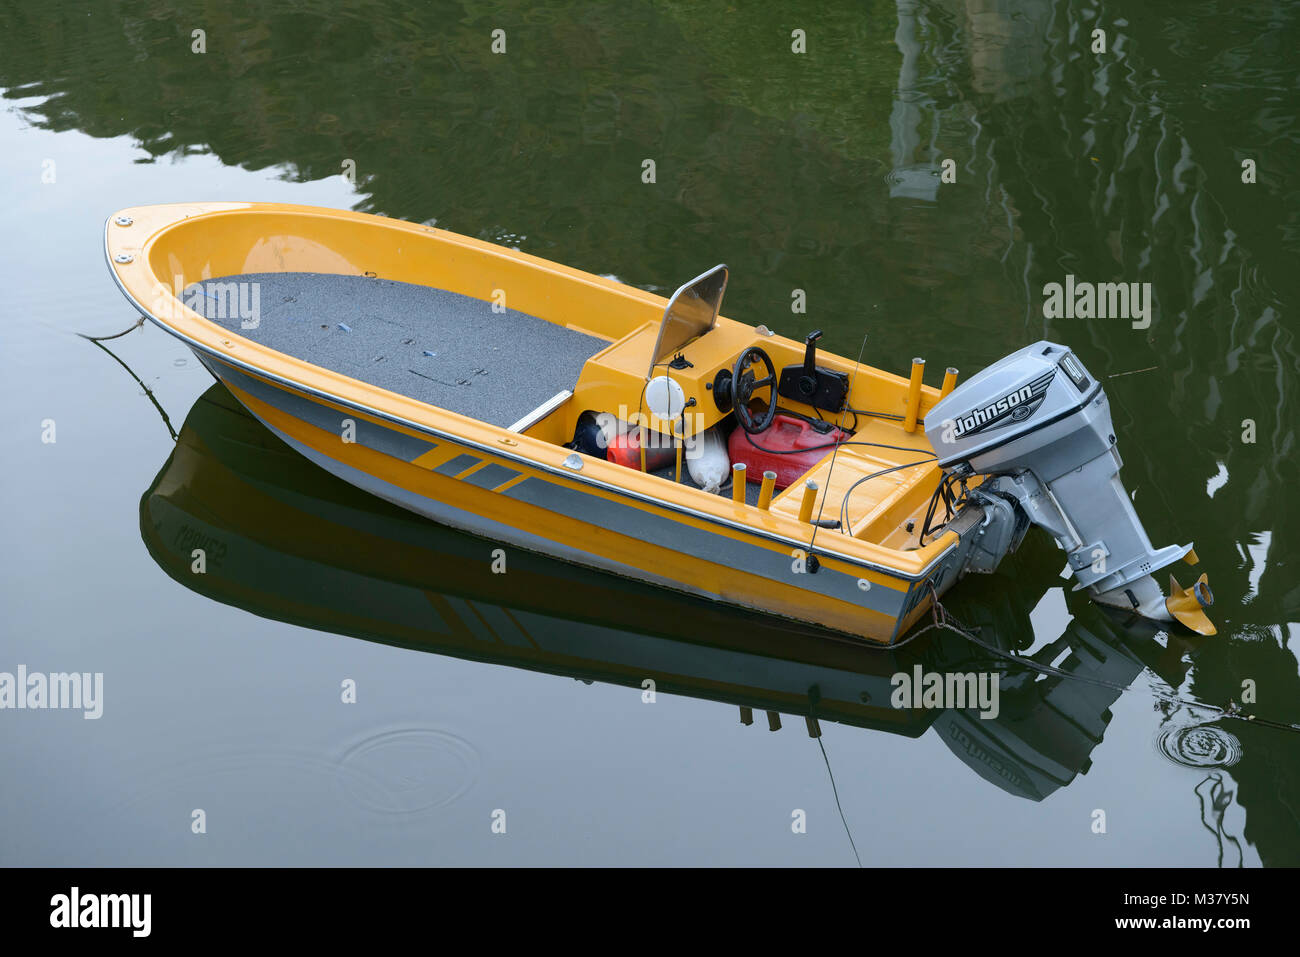 Boat With Outboard Motor High Resolution Stock Photography And Images Alamy